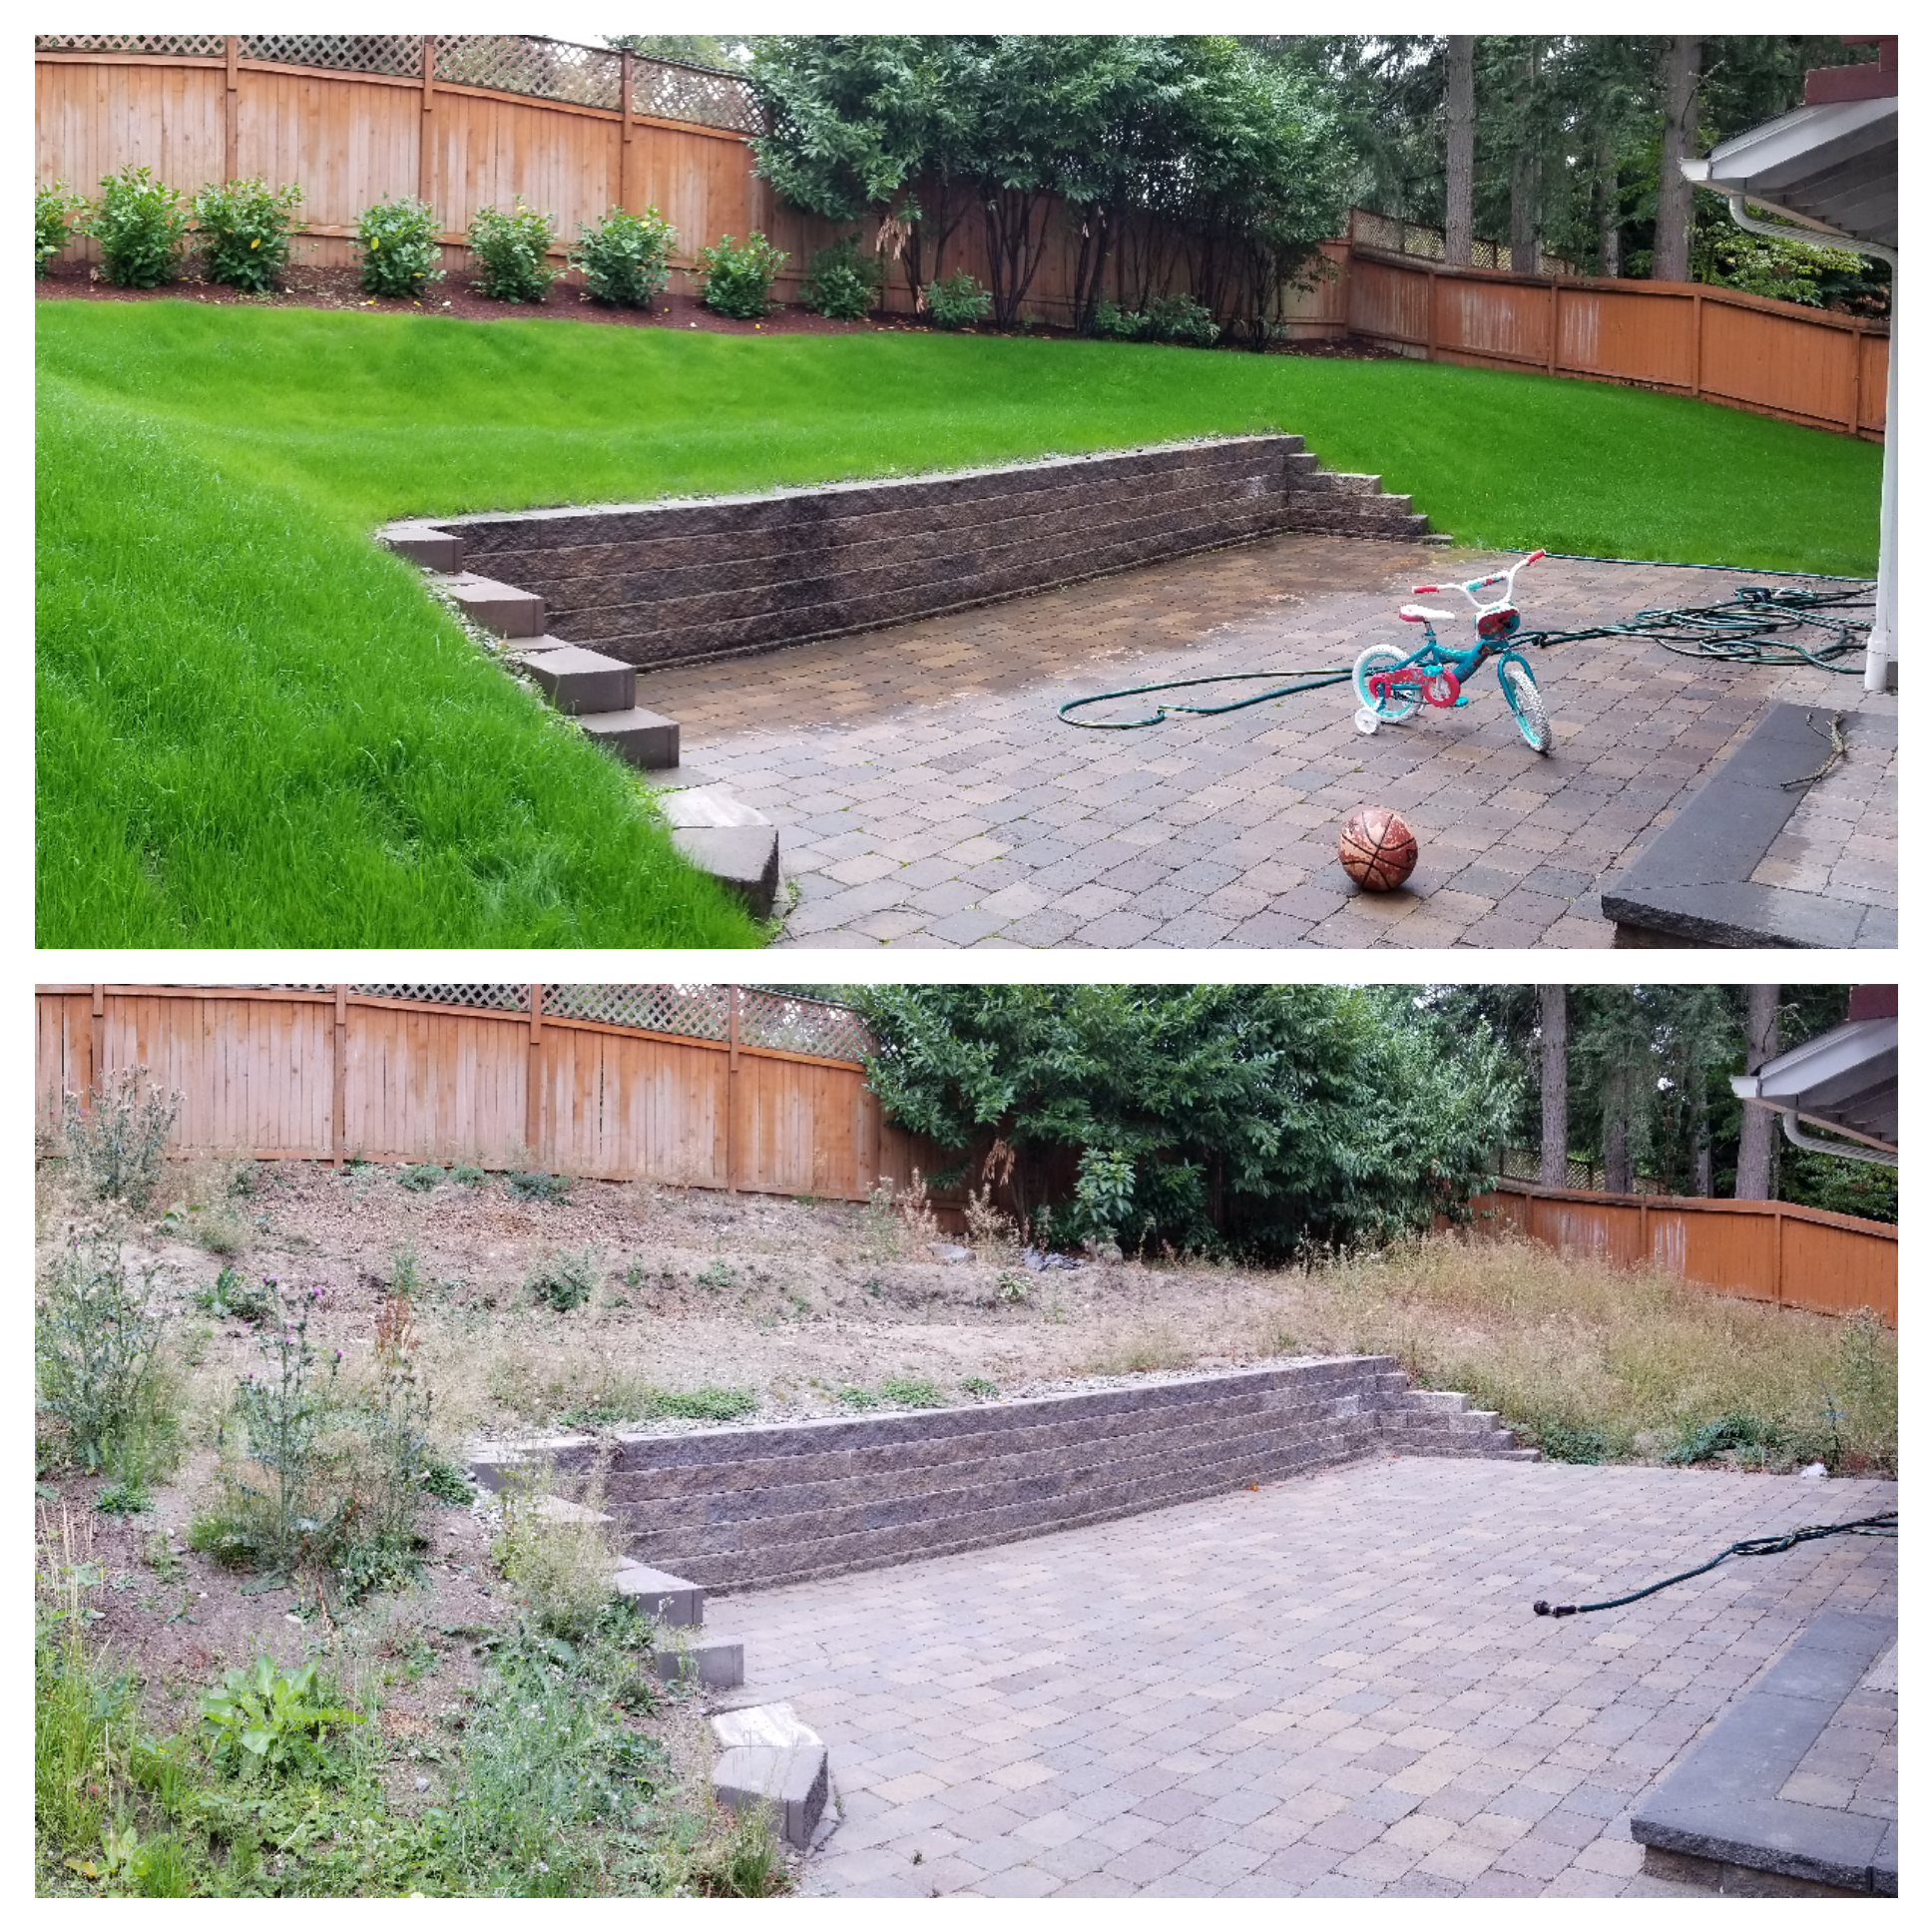 Evened out the slope and added grass